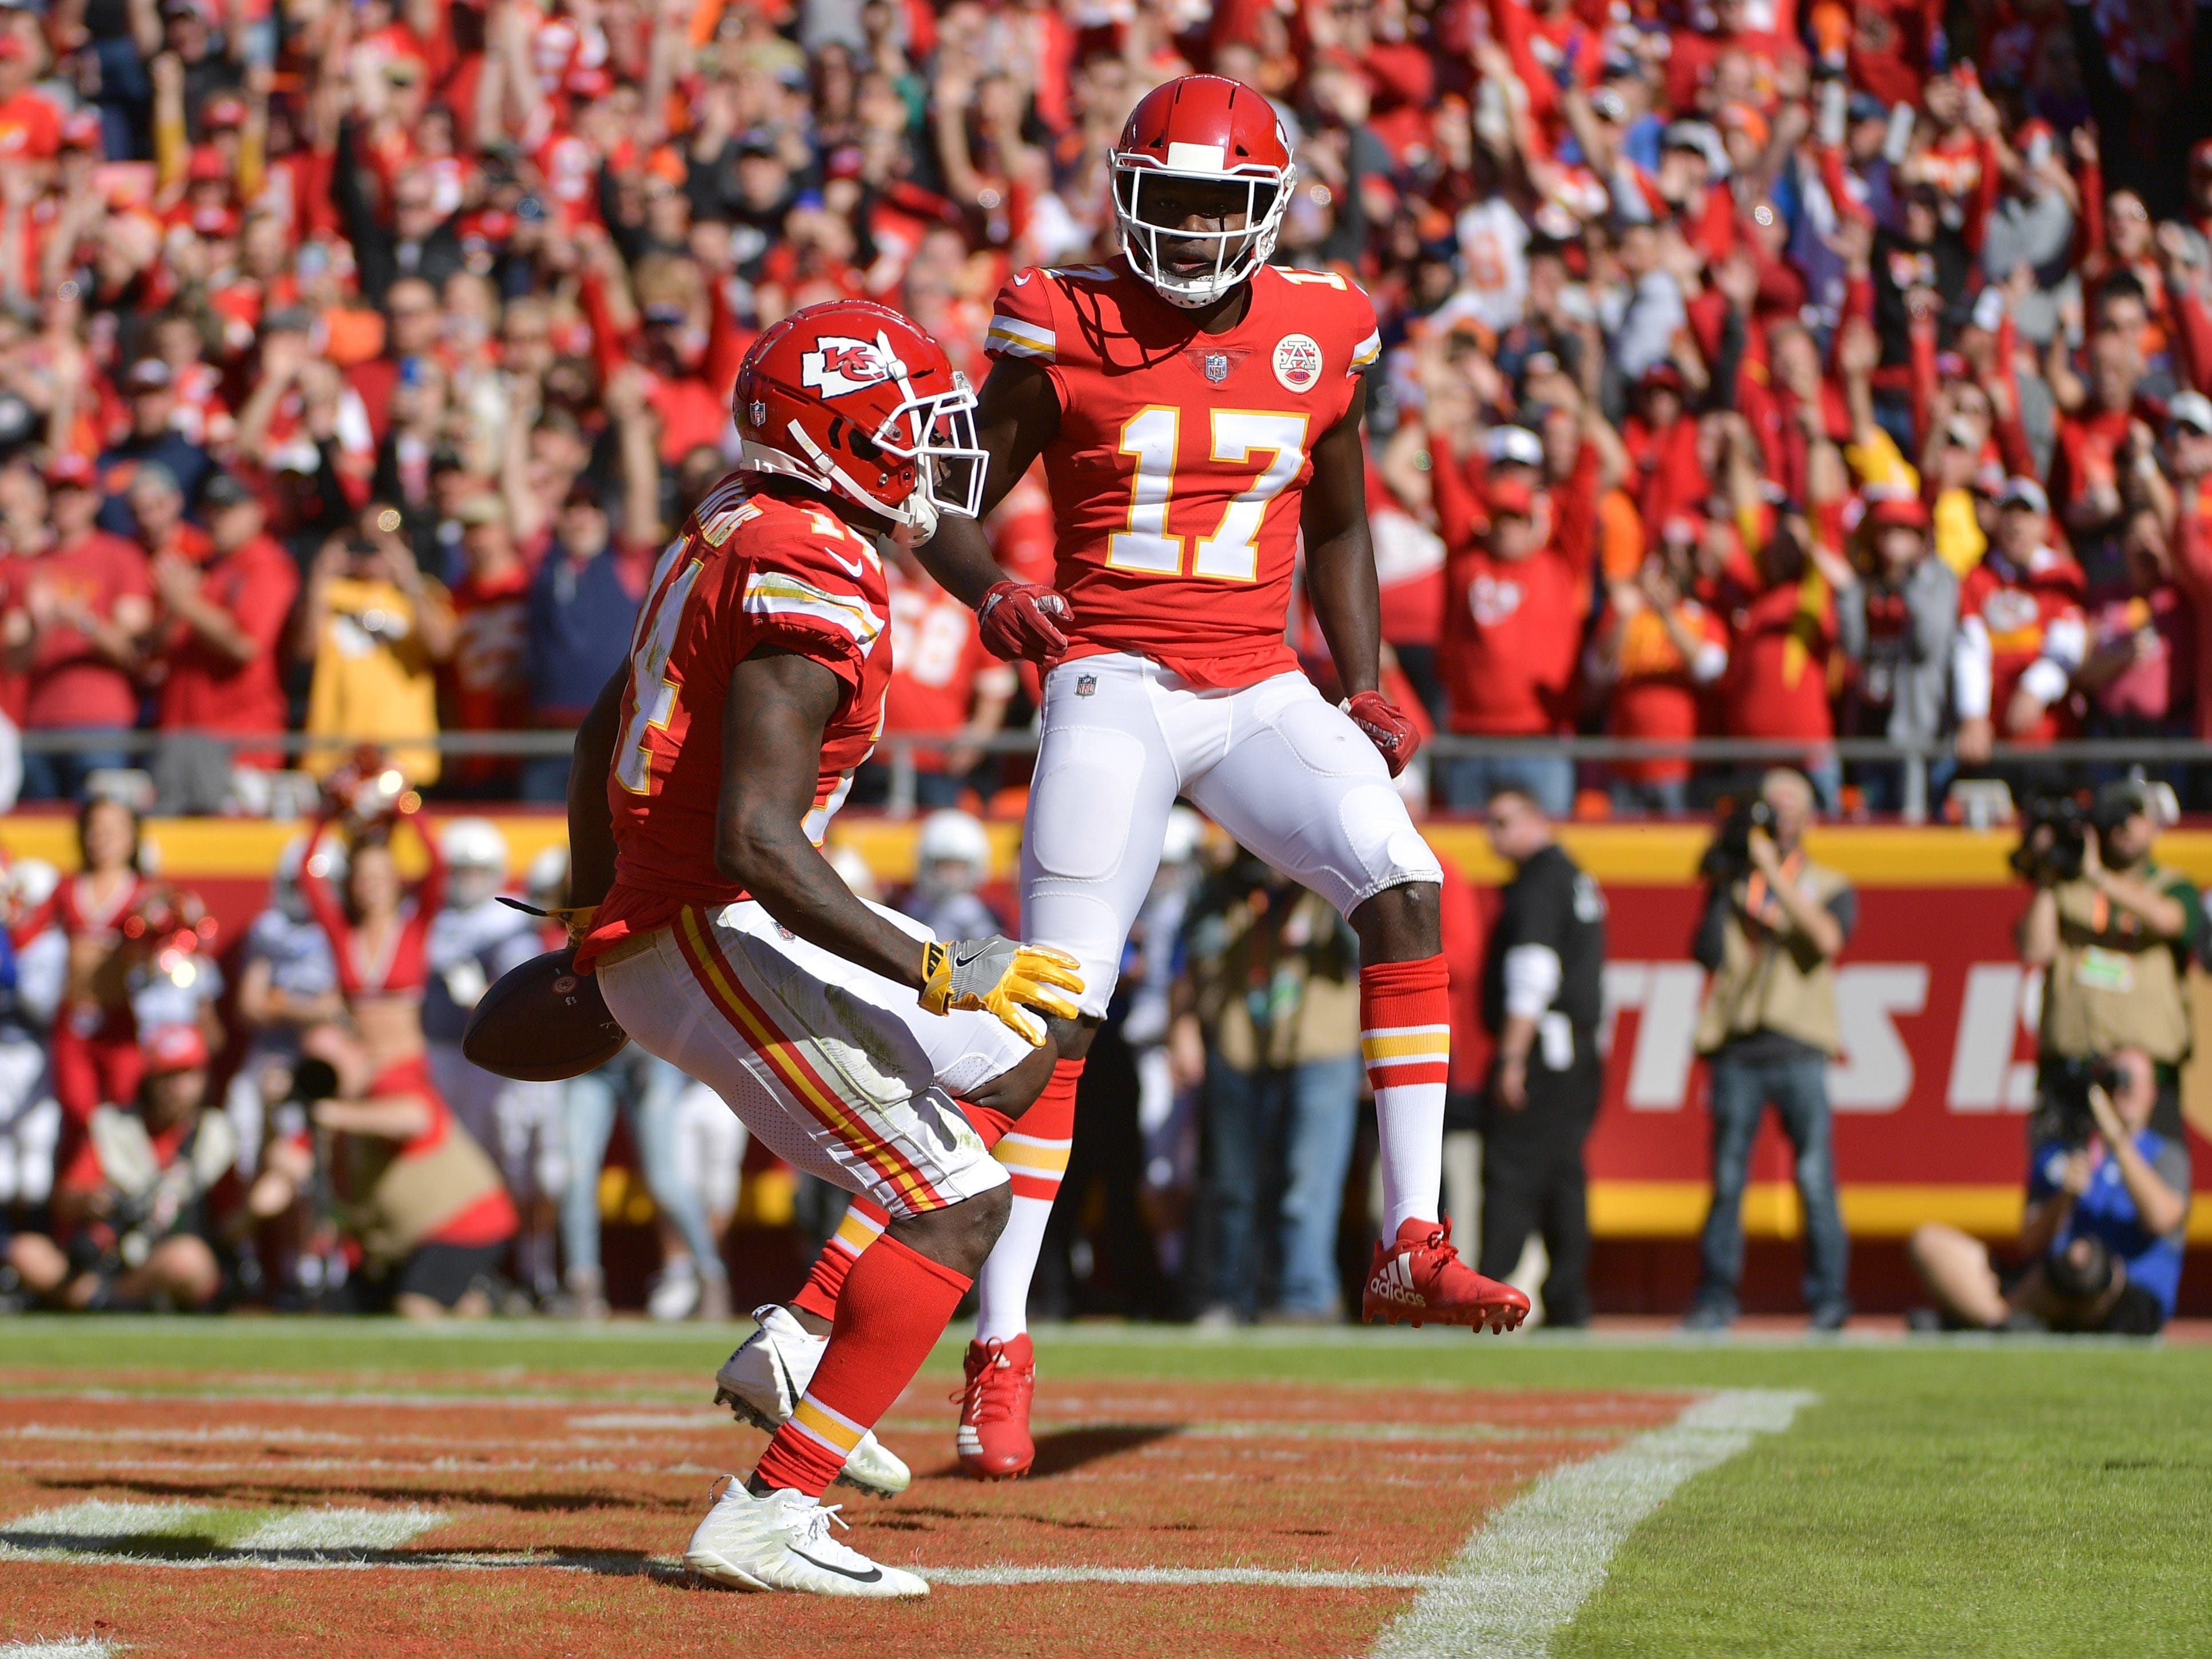 4. Chiefs (4): Treat — next two opponents (Browns, Cardinals) a combined 4-11-1. K.C. should keep treating fans to wins leading up to Mexico date with Rams.